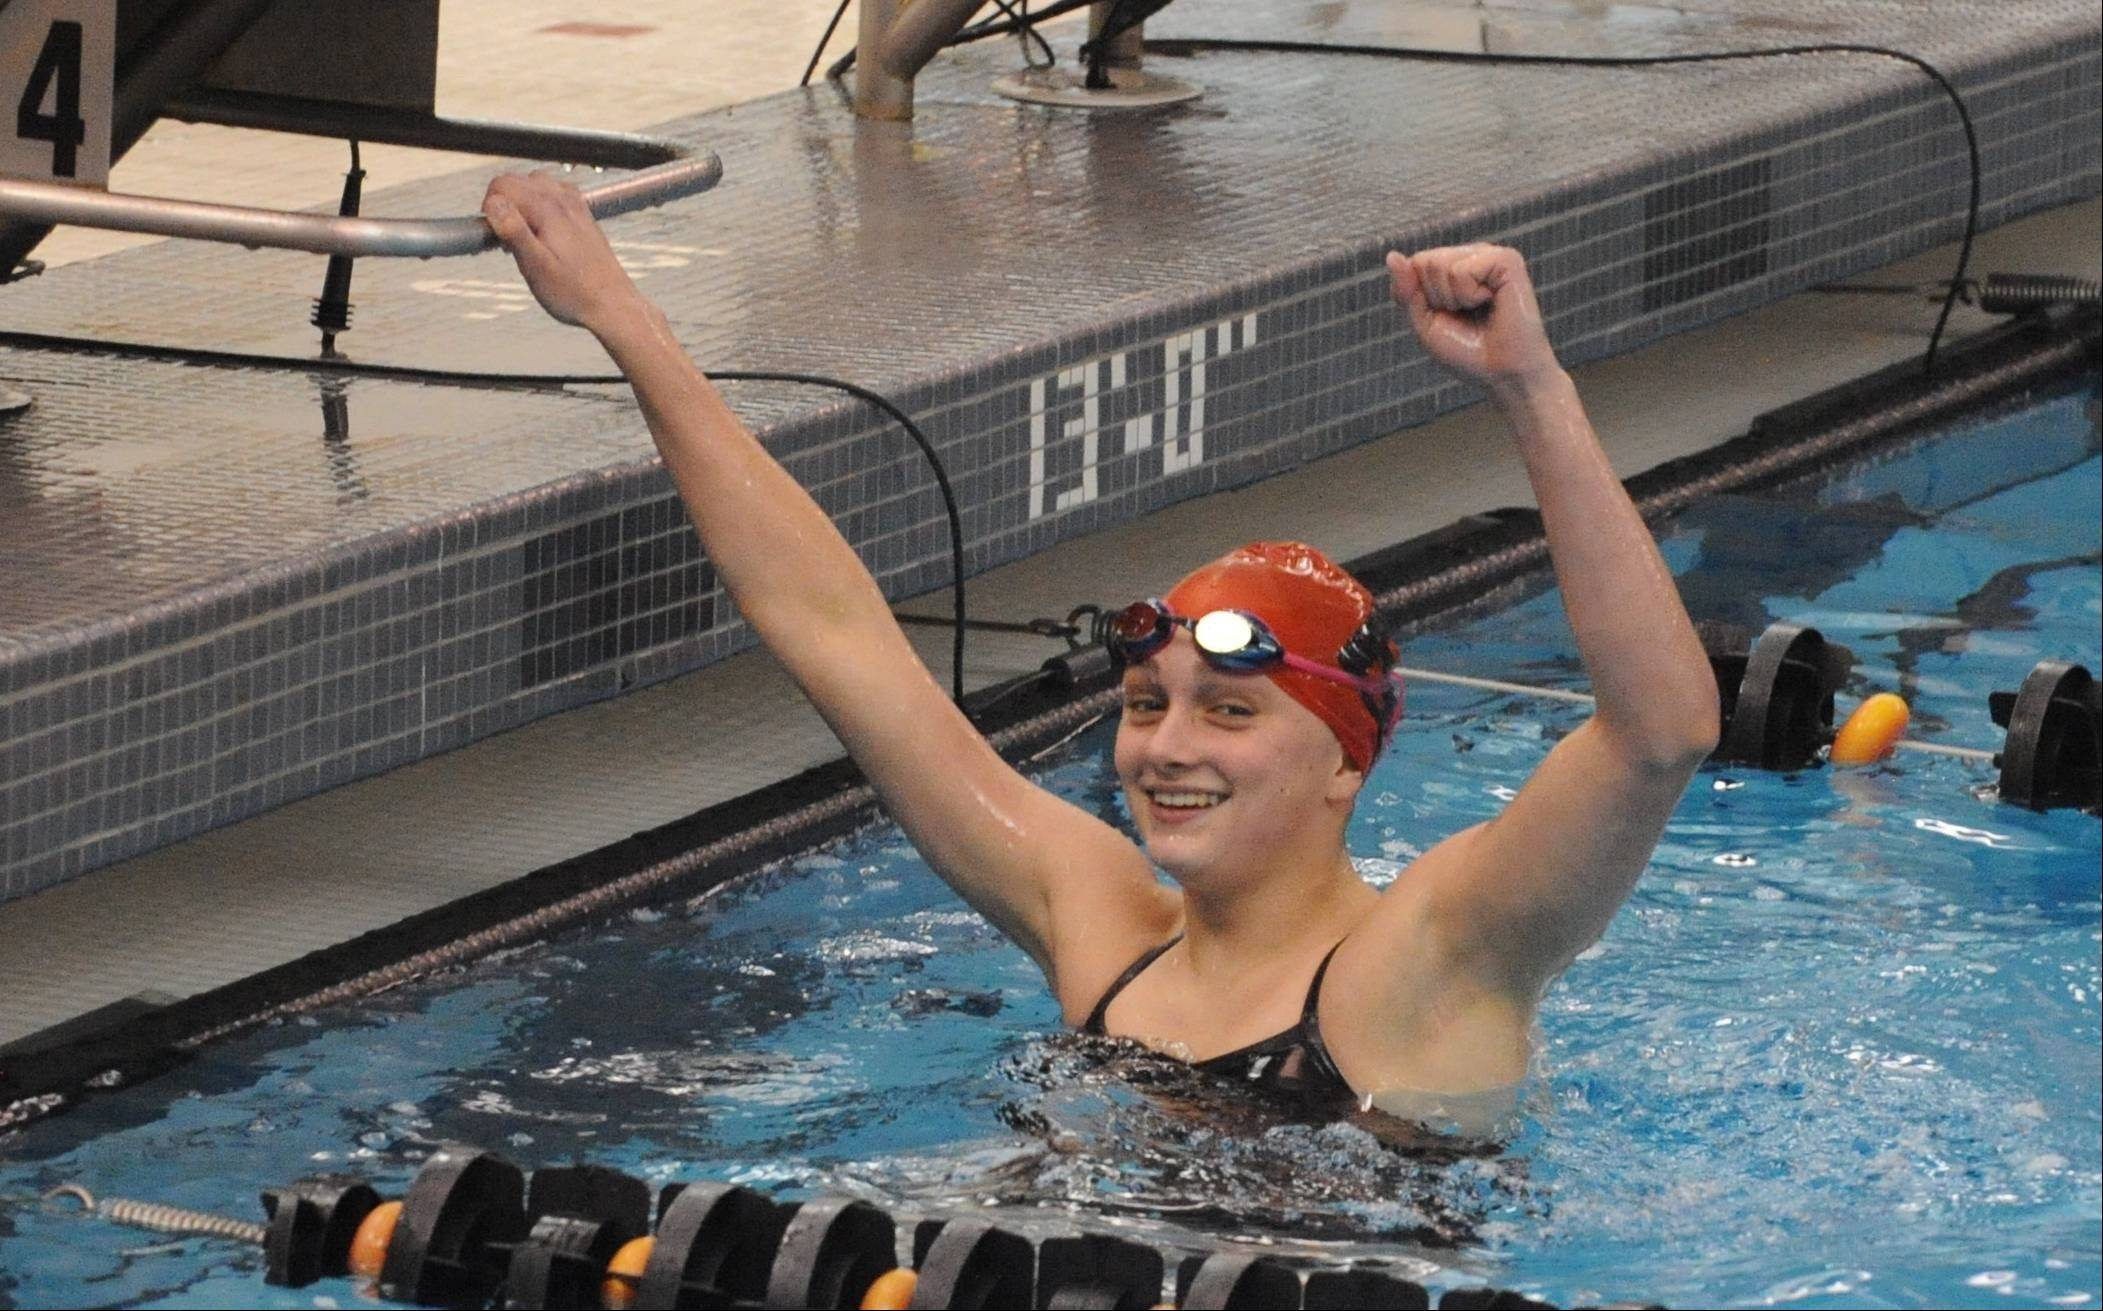 Barrington junior Mekenna Scheitlin celebrates a winning effort in the 50-yard freestyle during Saturday's Mid-Suburban League meet at Barrington.